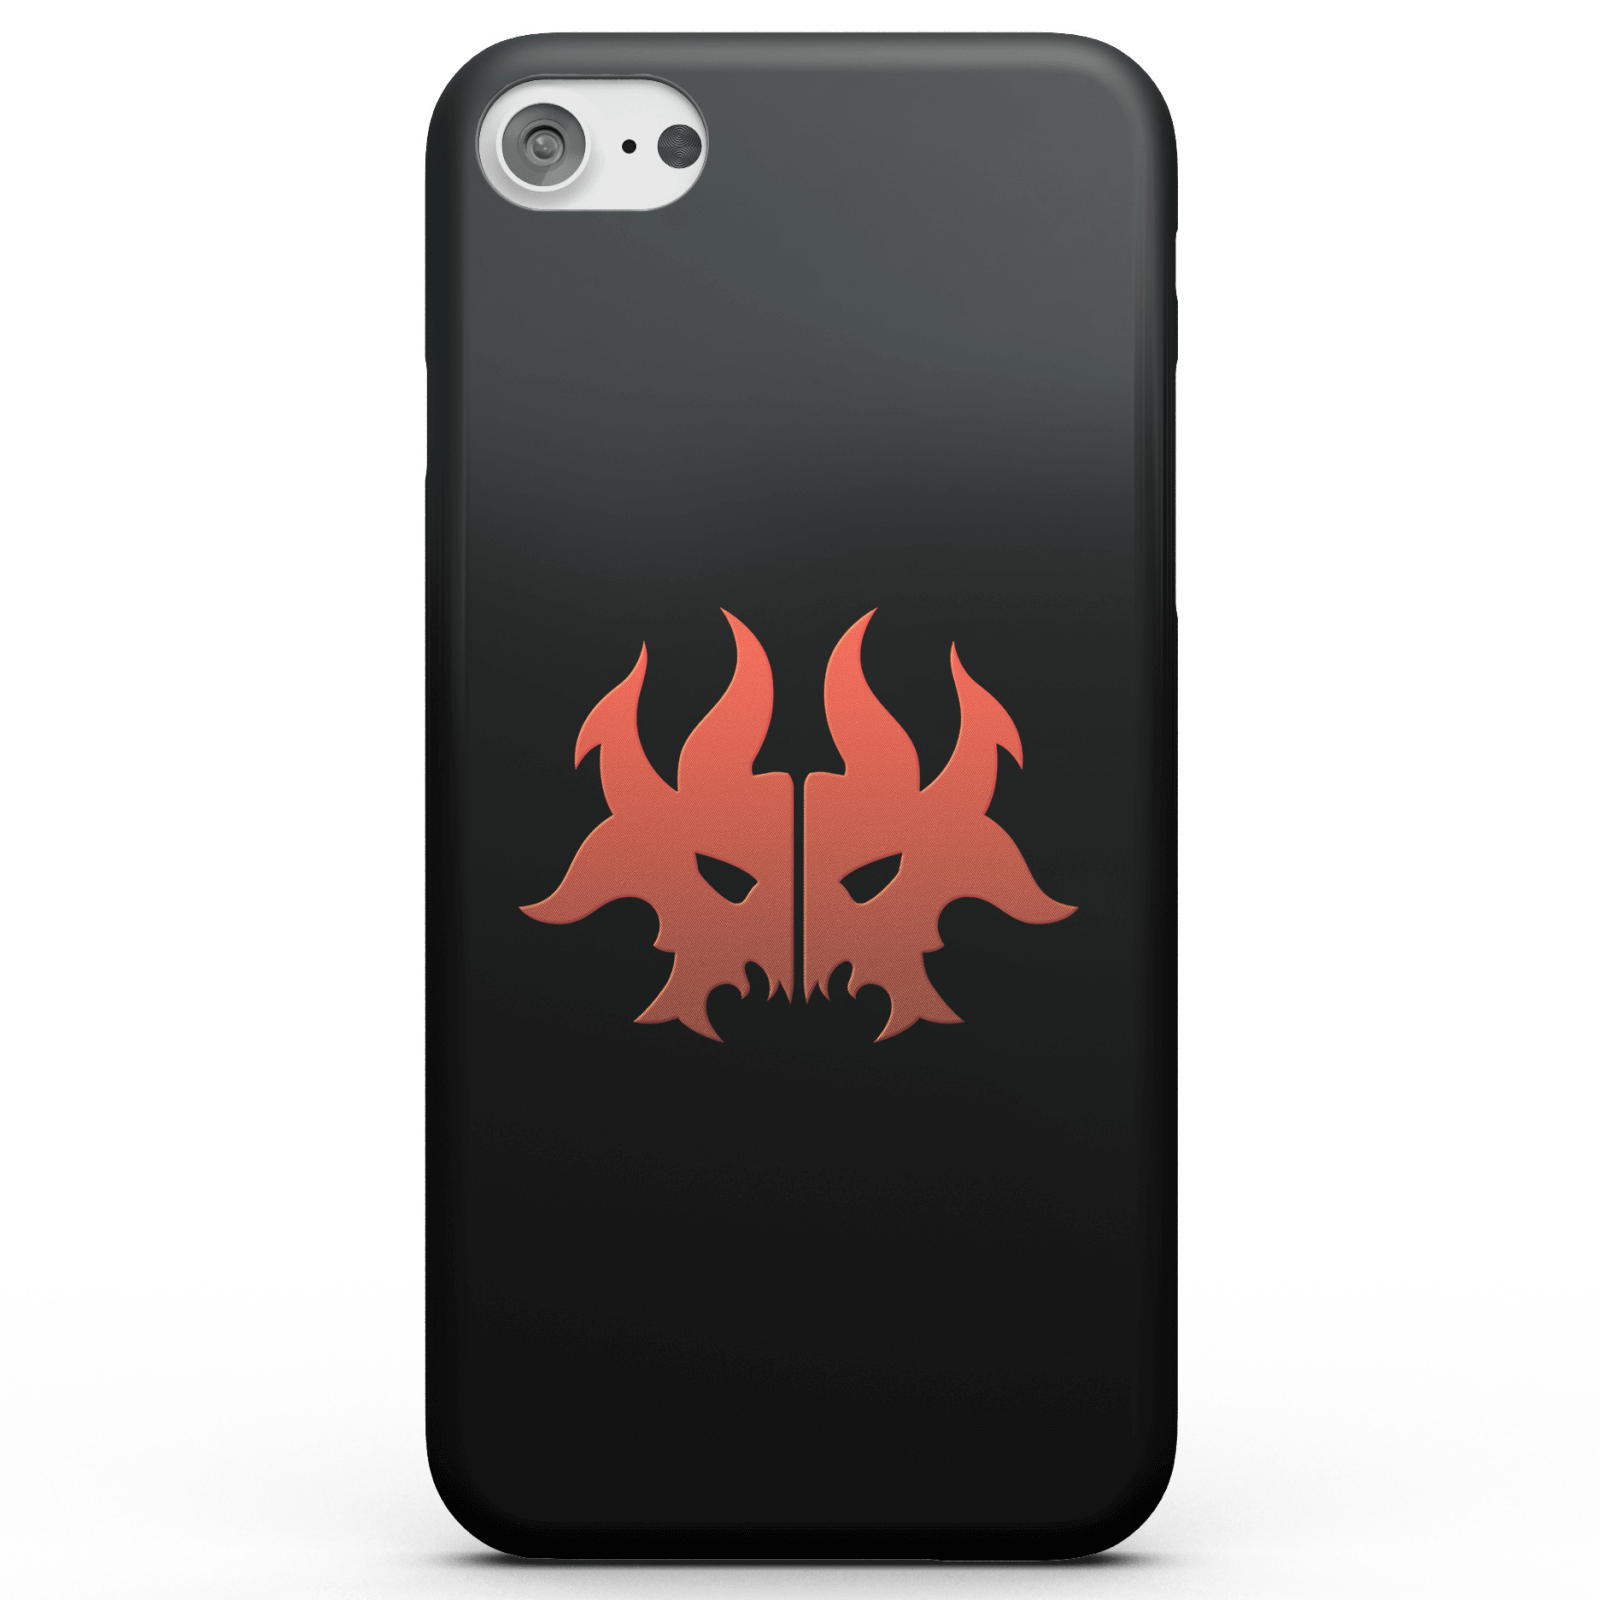 Funda Móvil Magic The Gathering Rakdos para iPhone y Android - Samsung S8 - Carcasa rígida - Mate de Magic The Gathering